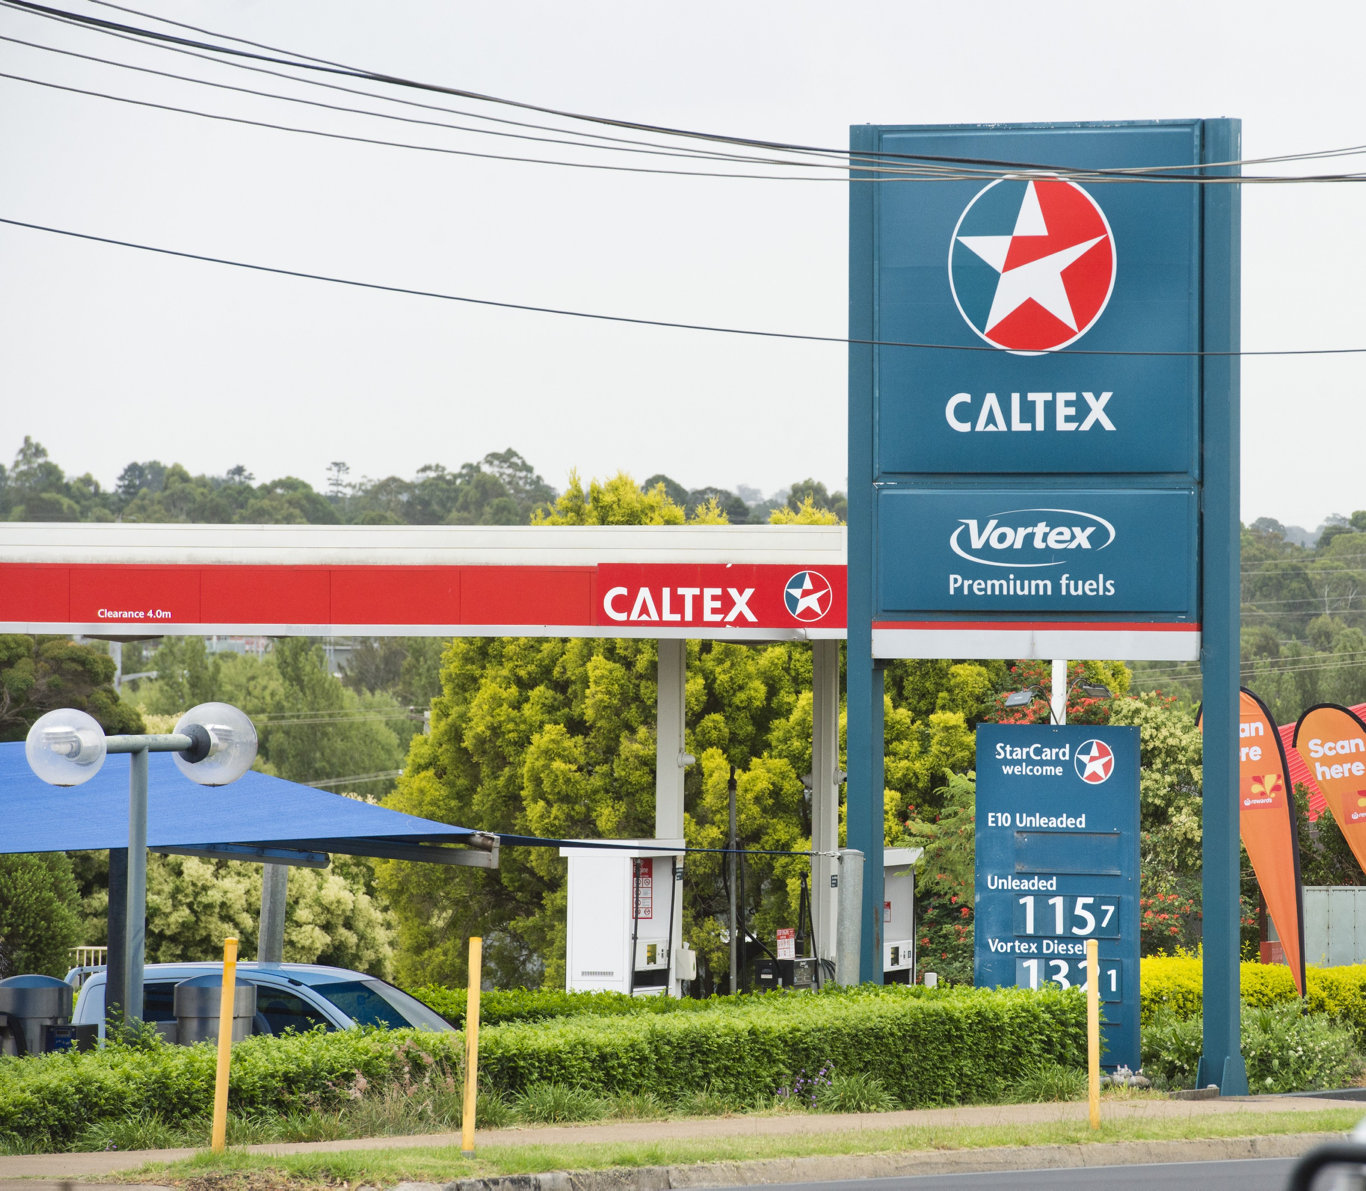 The man is accused of holding up the Caltex service station while armed with a knife.